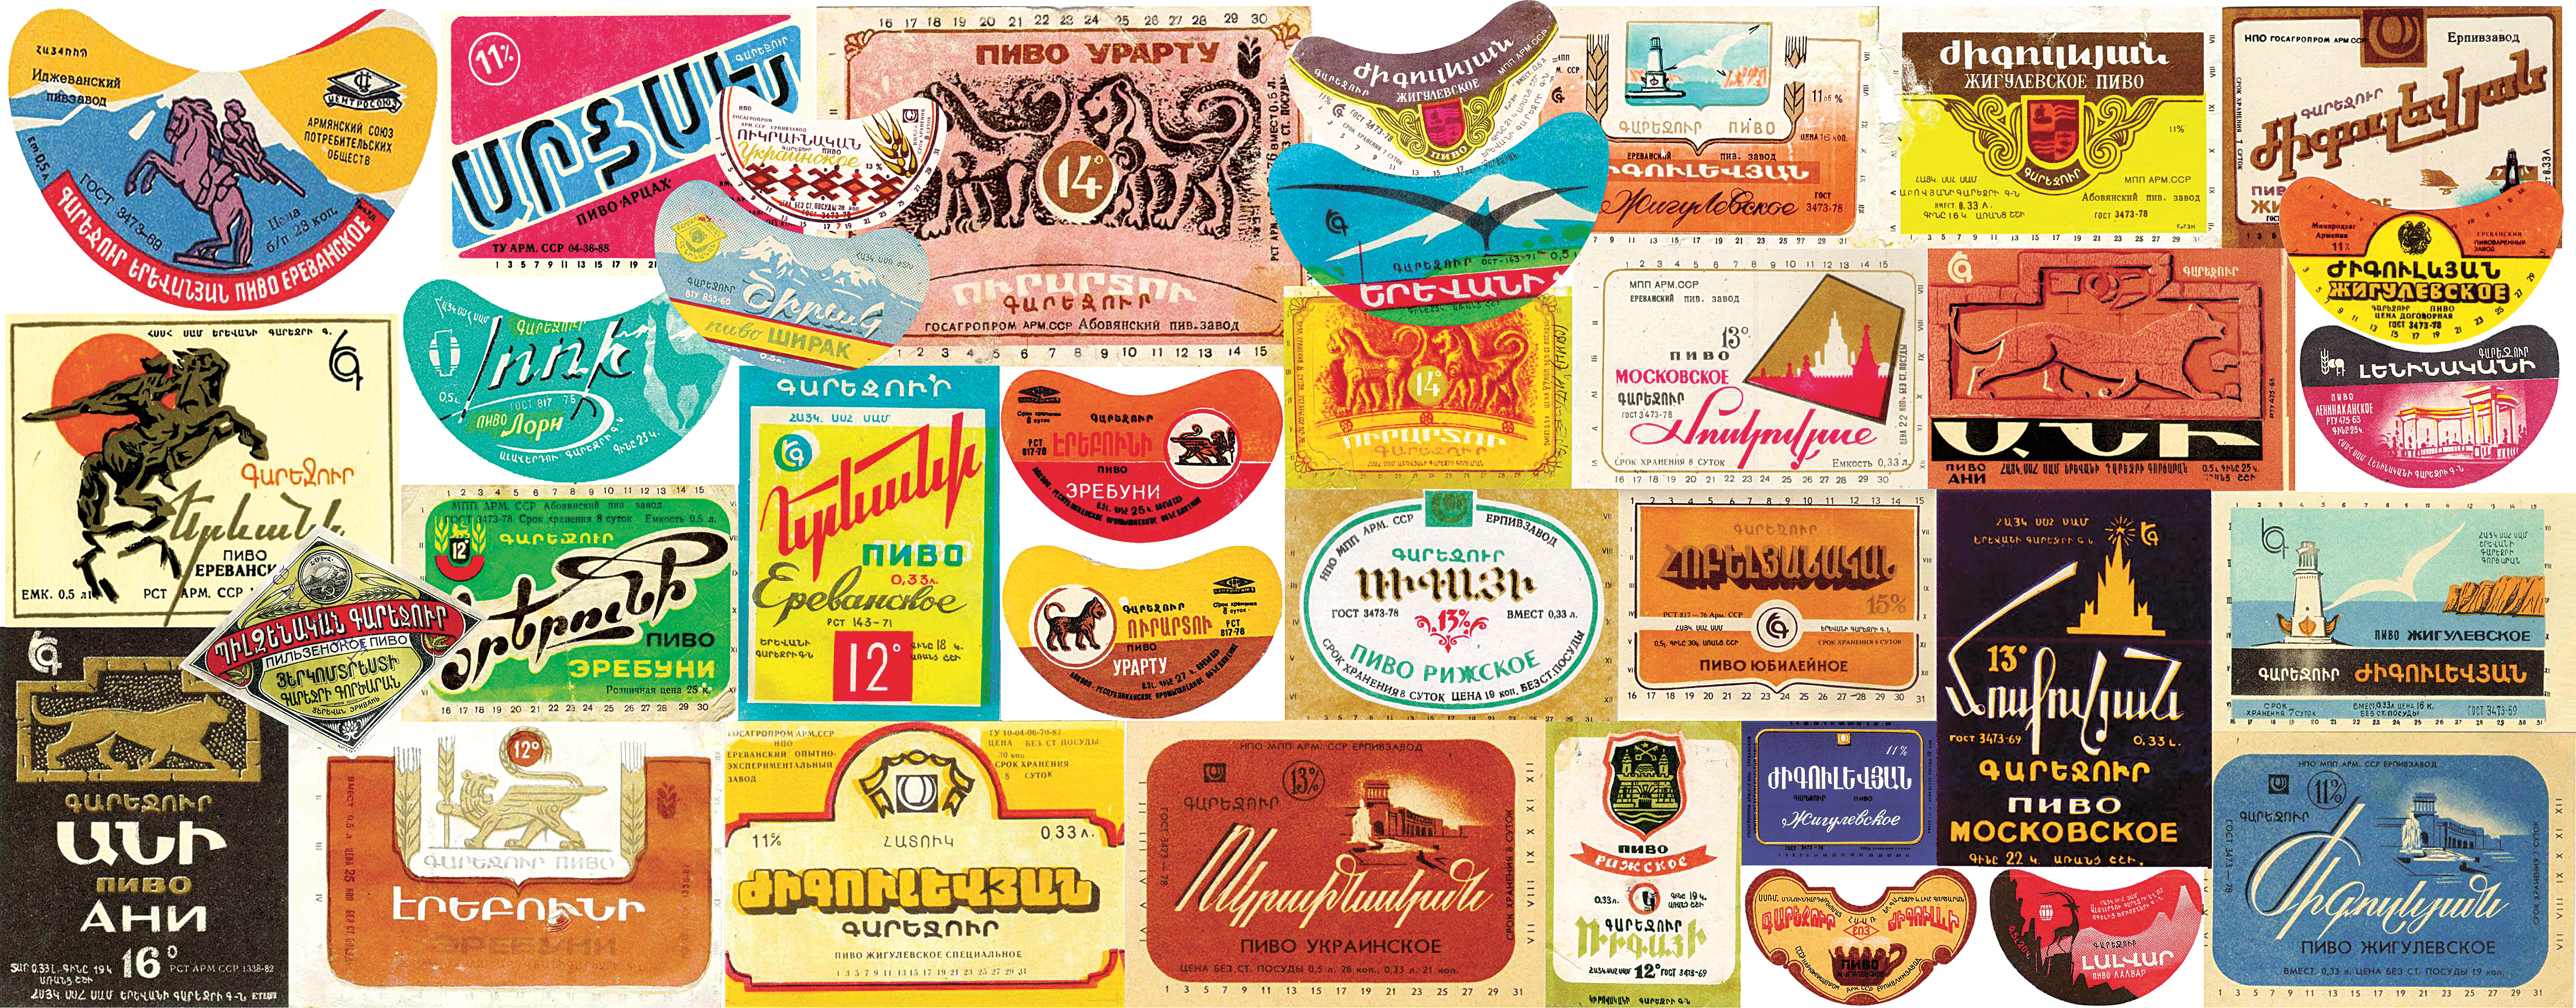 A compilation of Soviet and pre-Soviet Armenian beer labels